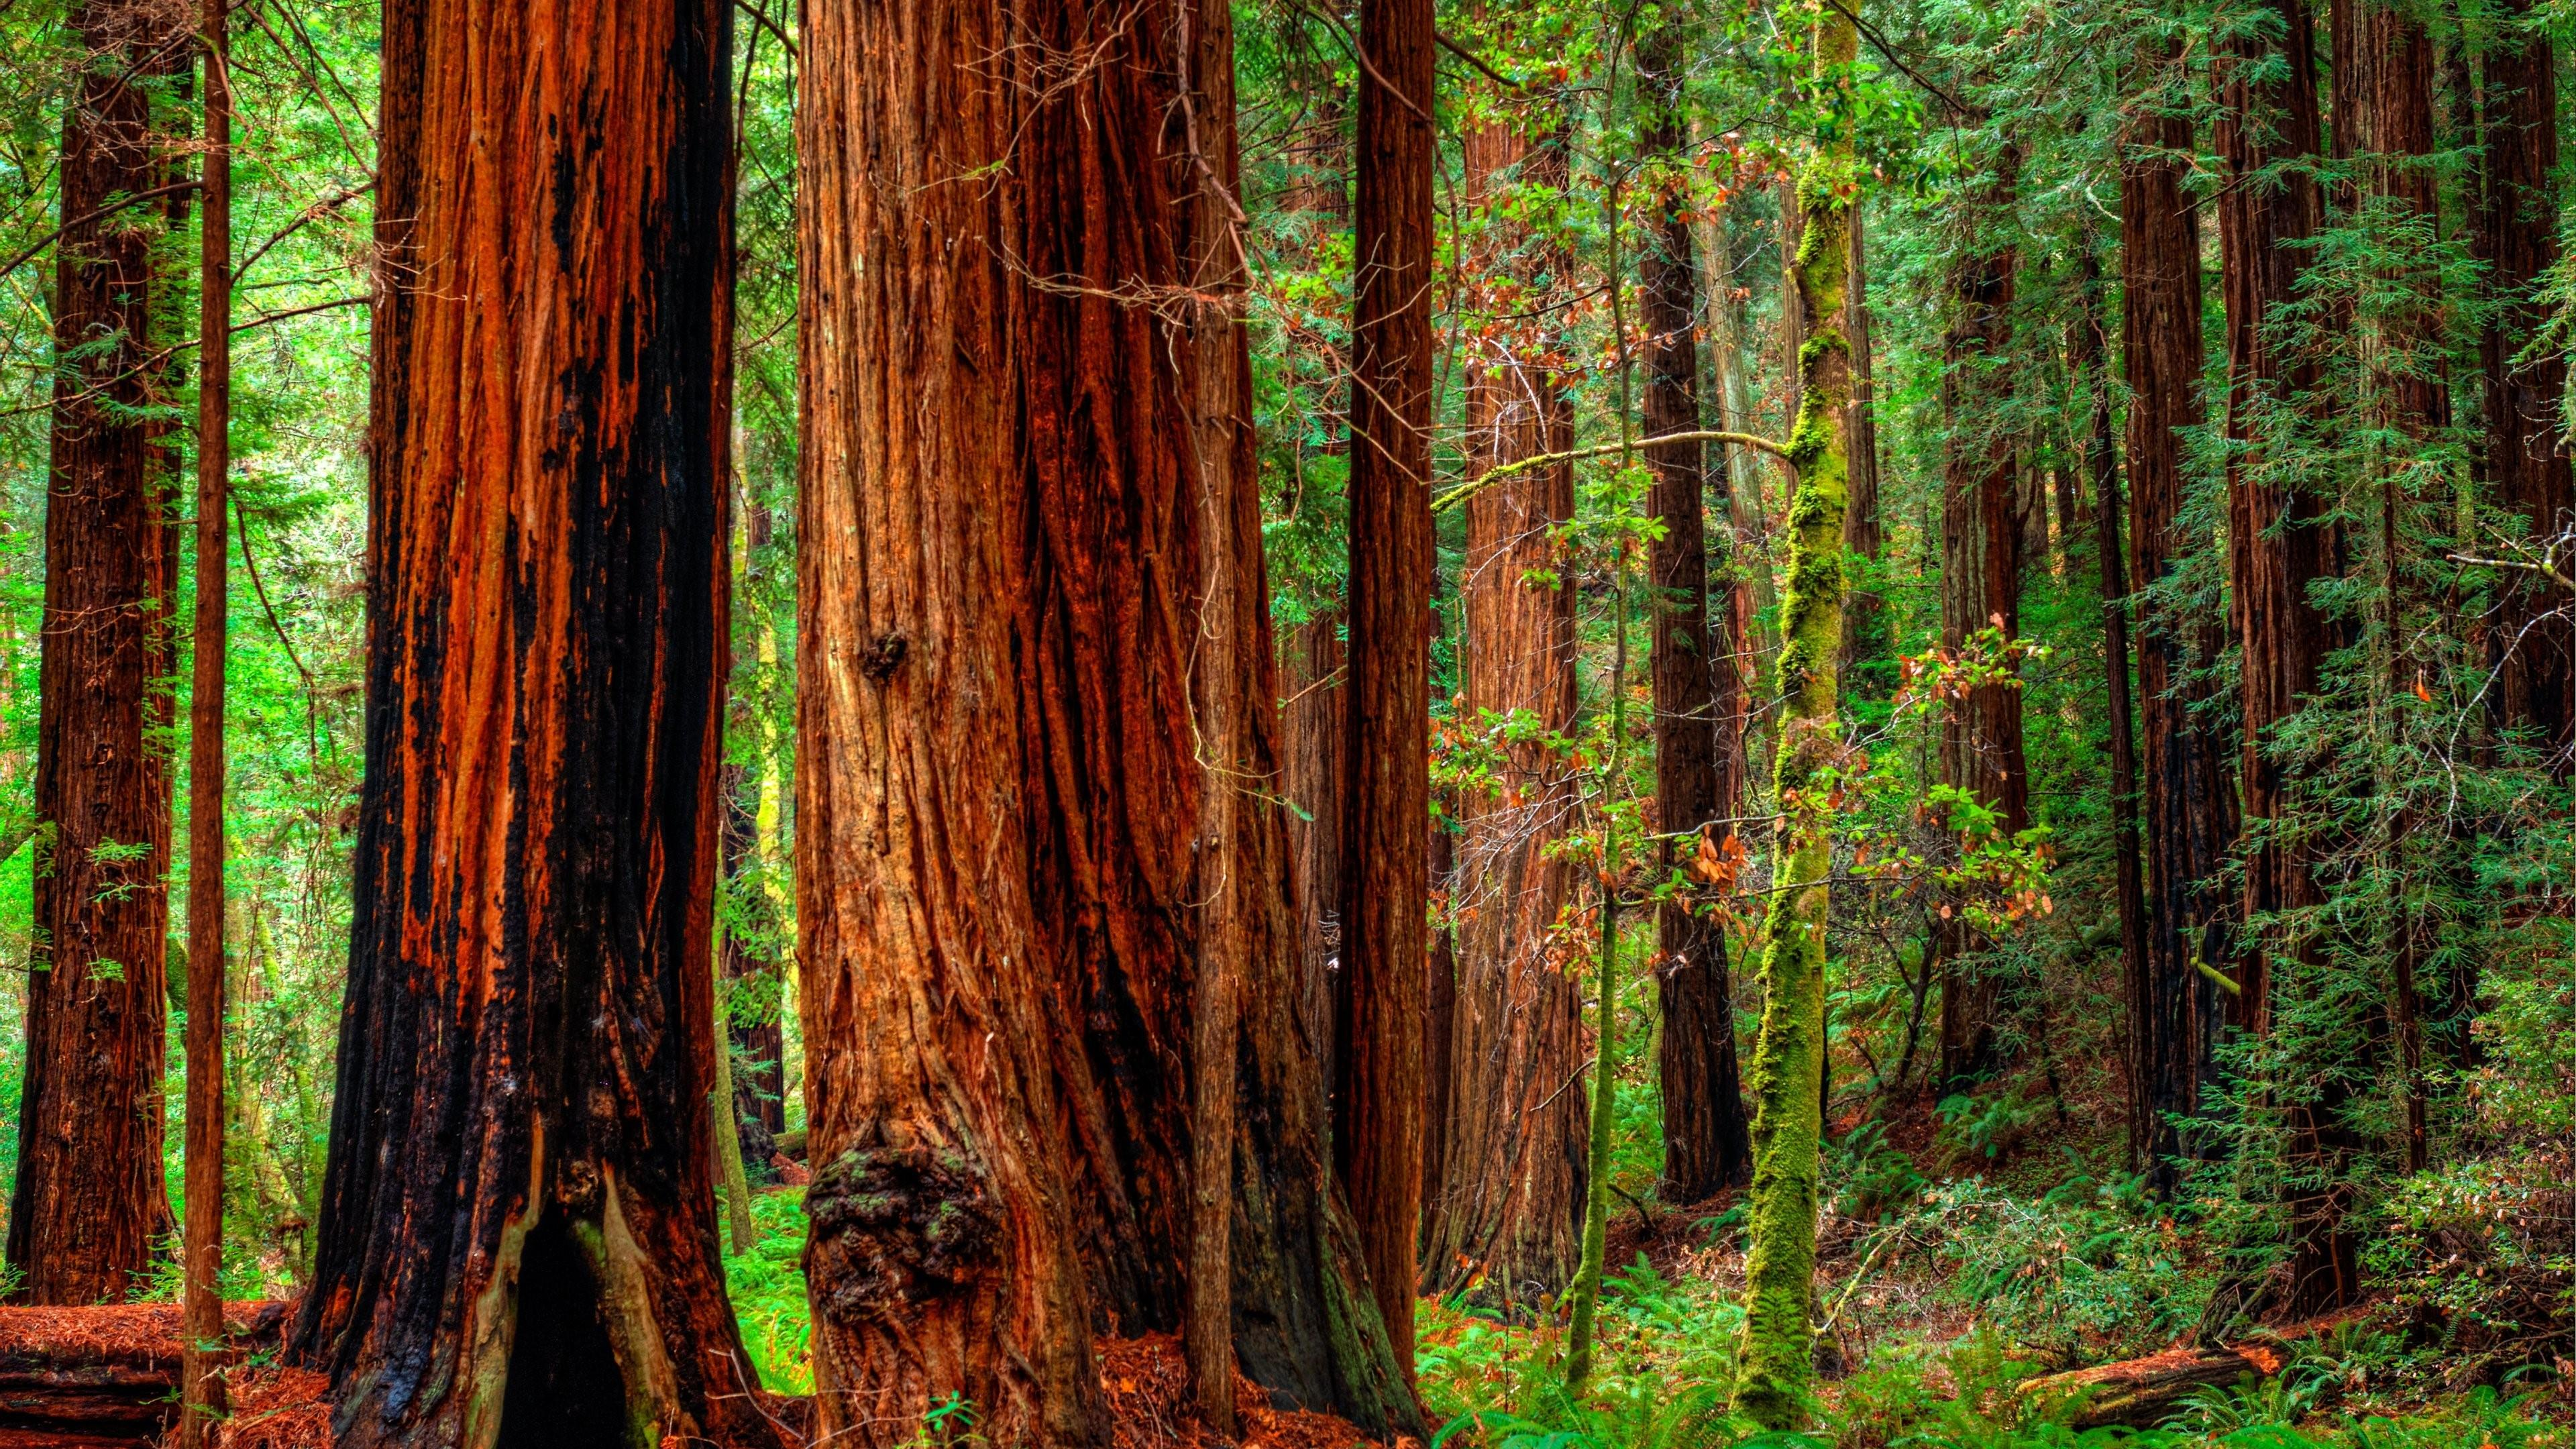 Forest Trees In Jedediah Smith Redwoods State Park